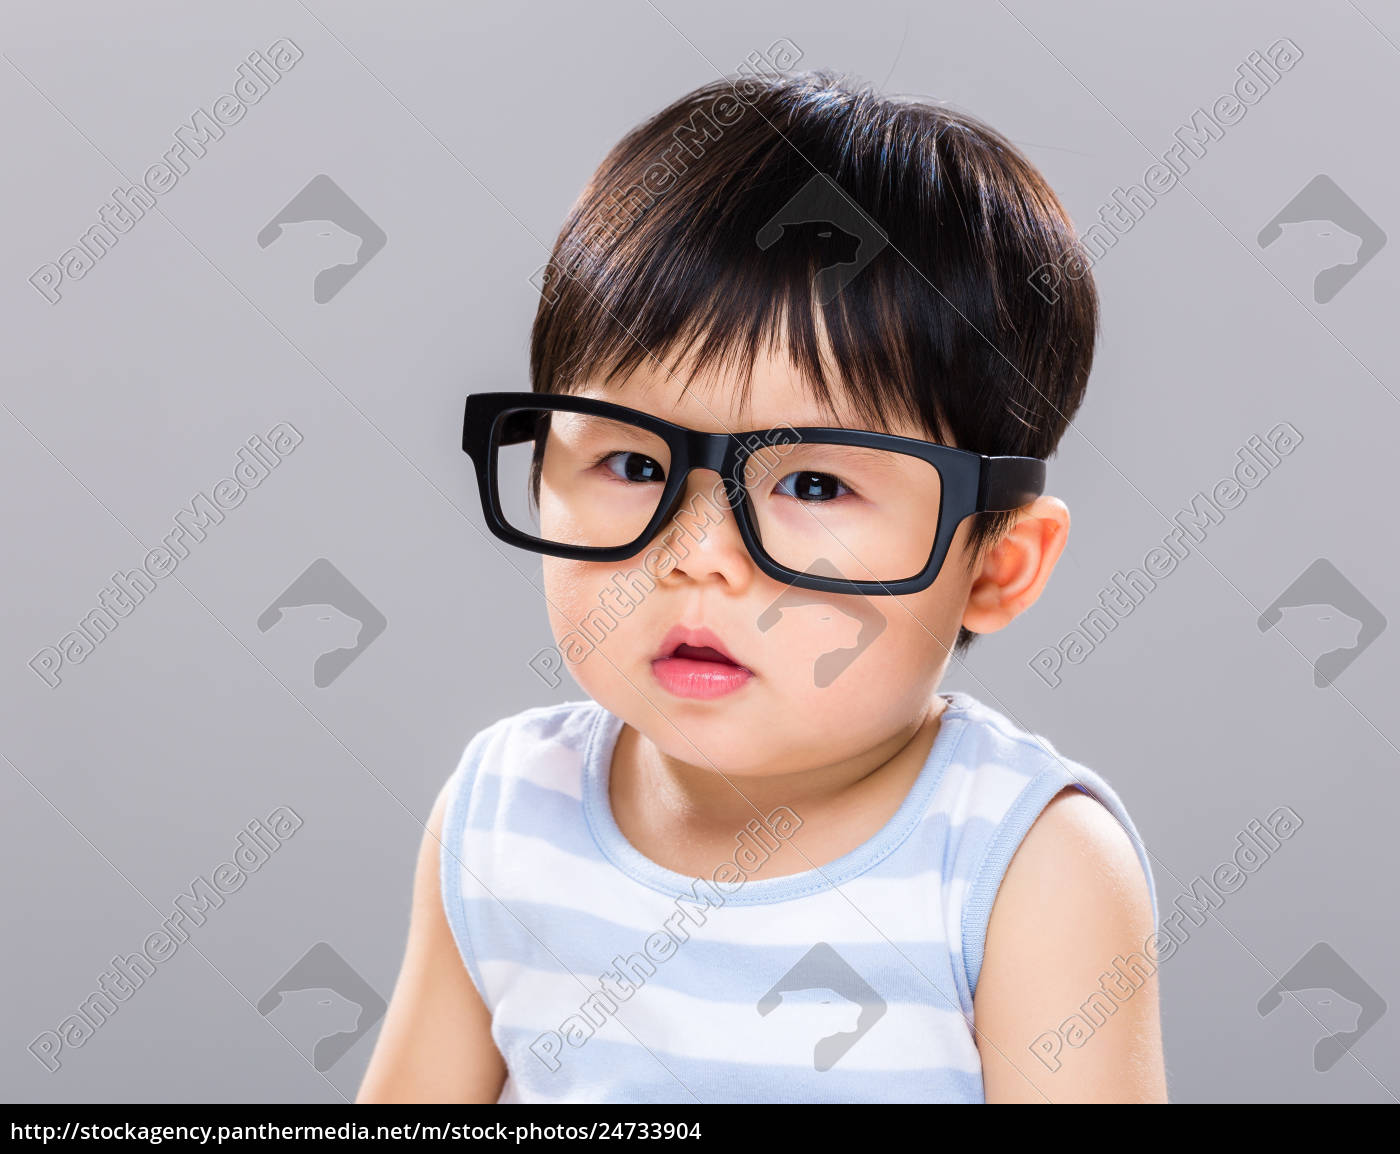 Royalty free photo 24733904 - Asian baby boy with black glasses